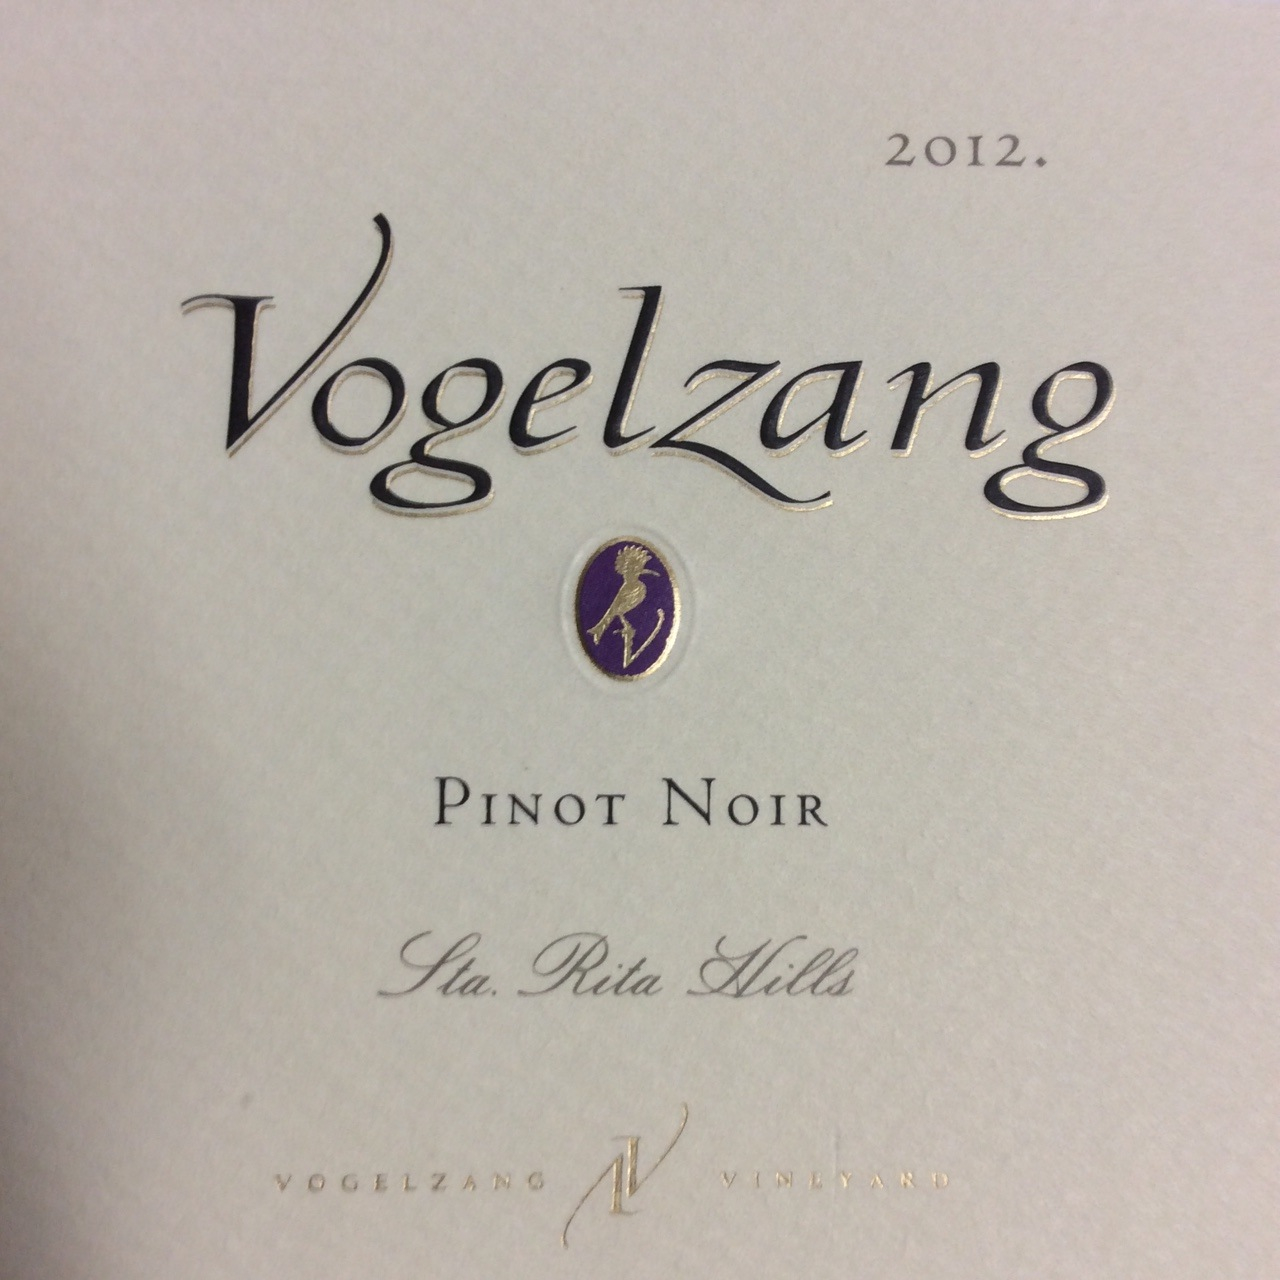 Vogelzang Vineyard Pinot Noir Fiddlestix Vineyard